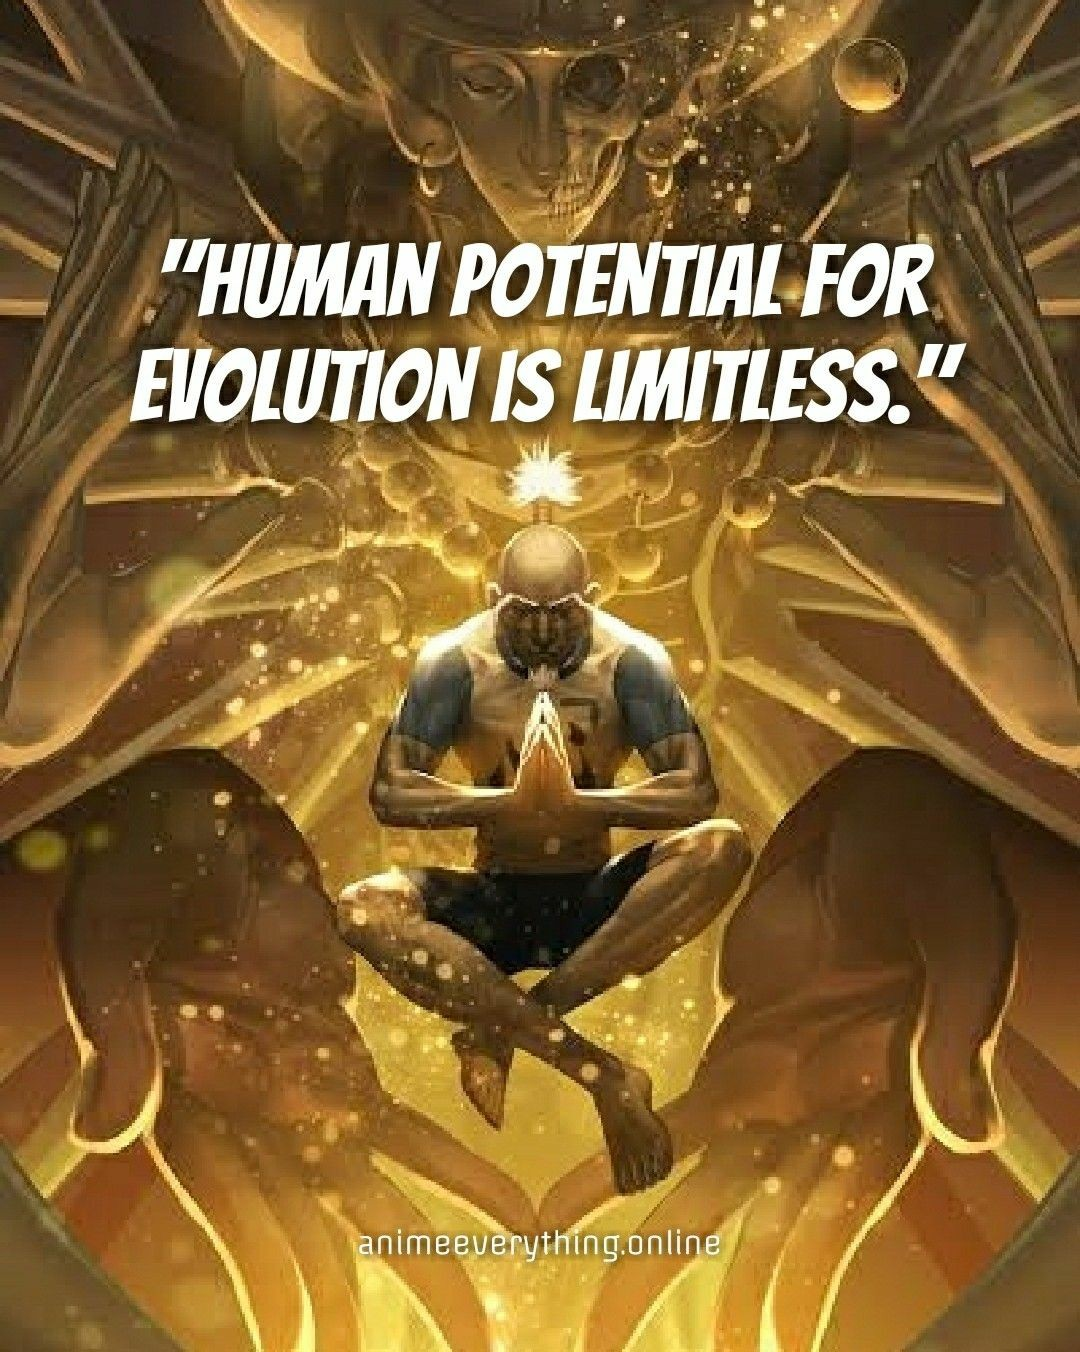 [IMAGE] Human potential is limitless